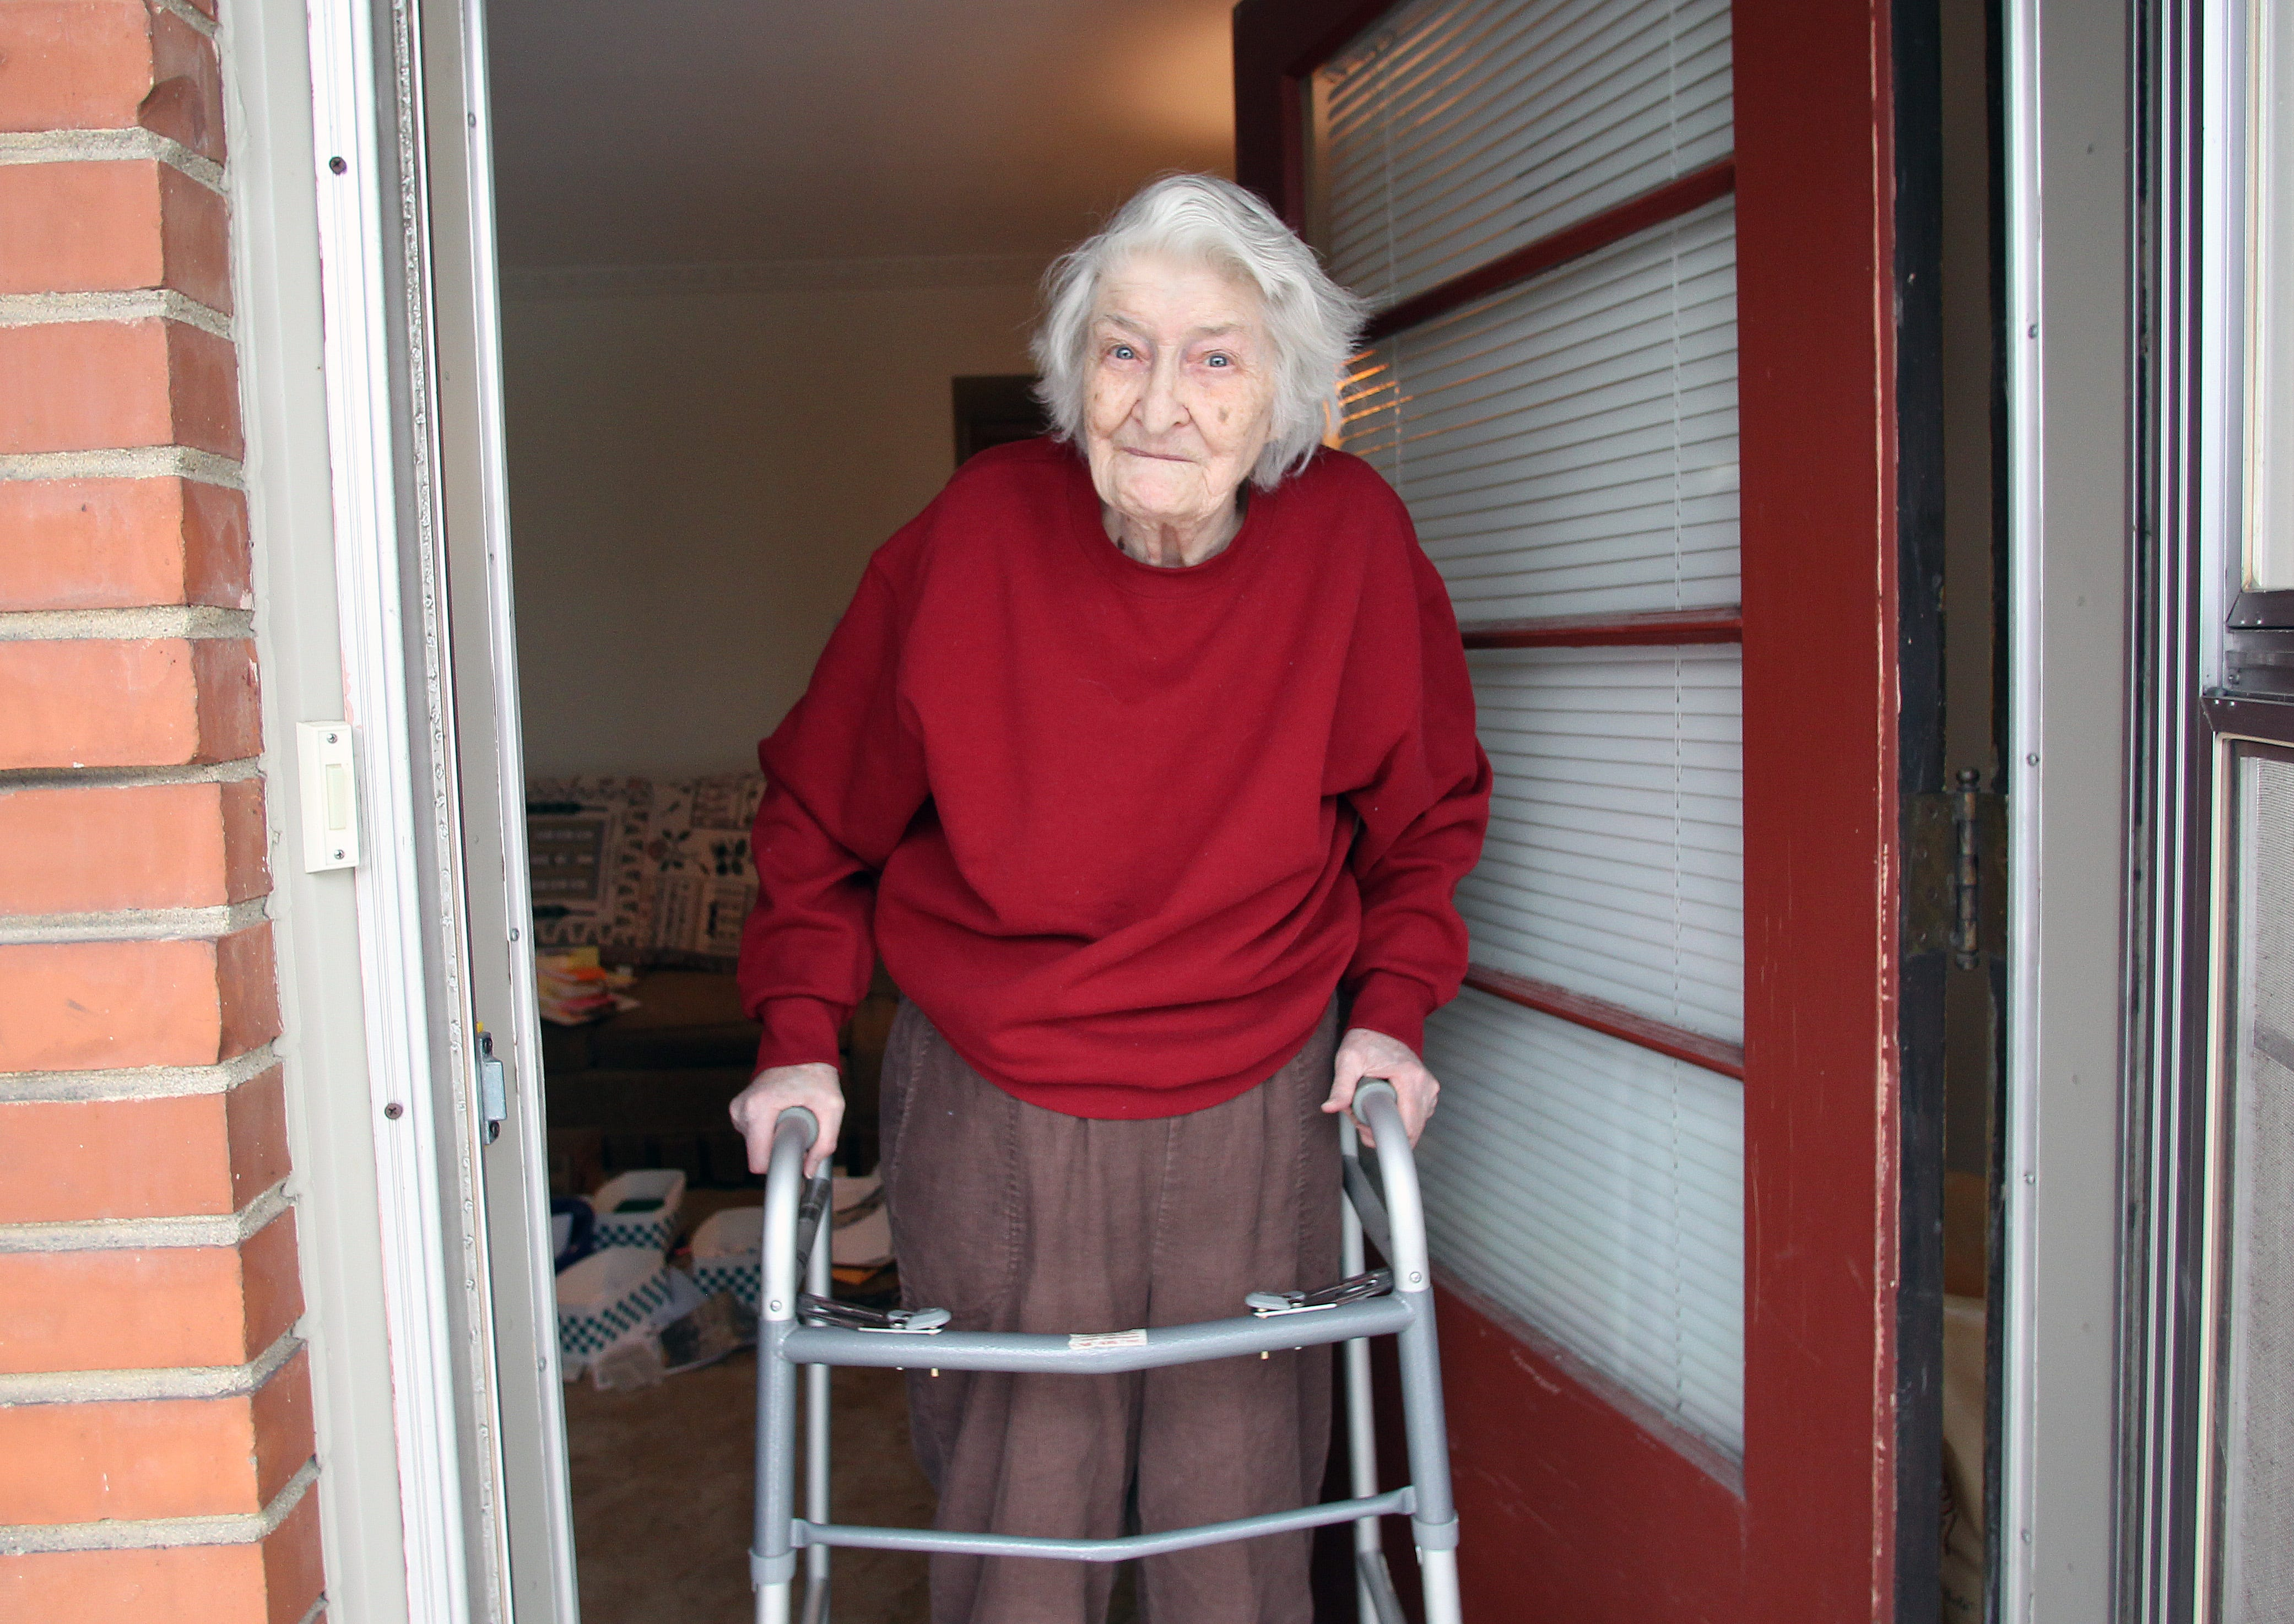 Alberta Lessard, now 93, of West Allis, filed the lawsuit in 1971 that overturned the laws governing commitment for mental illness. As a result, a person can only be committed if he or she is proven to be a danger to himself or others. This photo is from 2011.